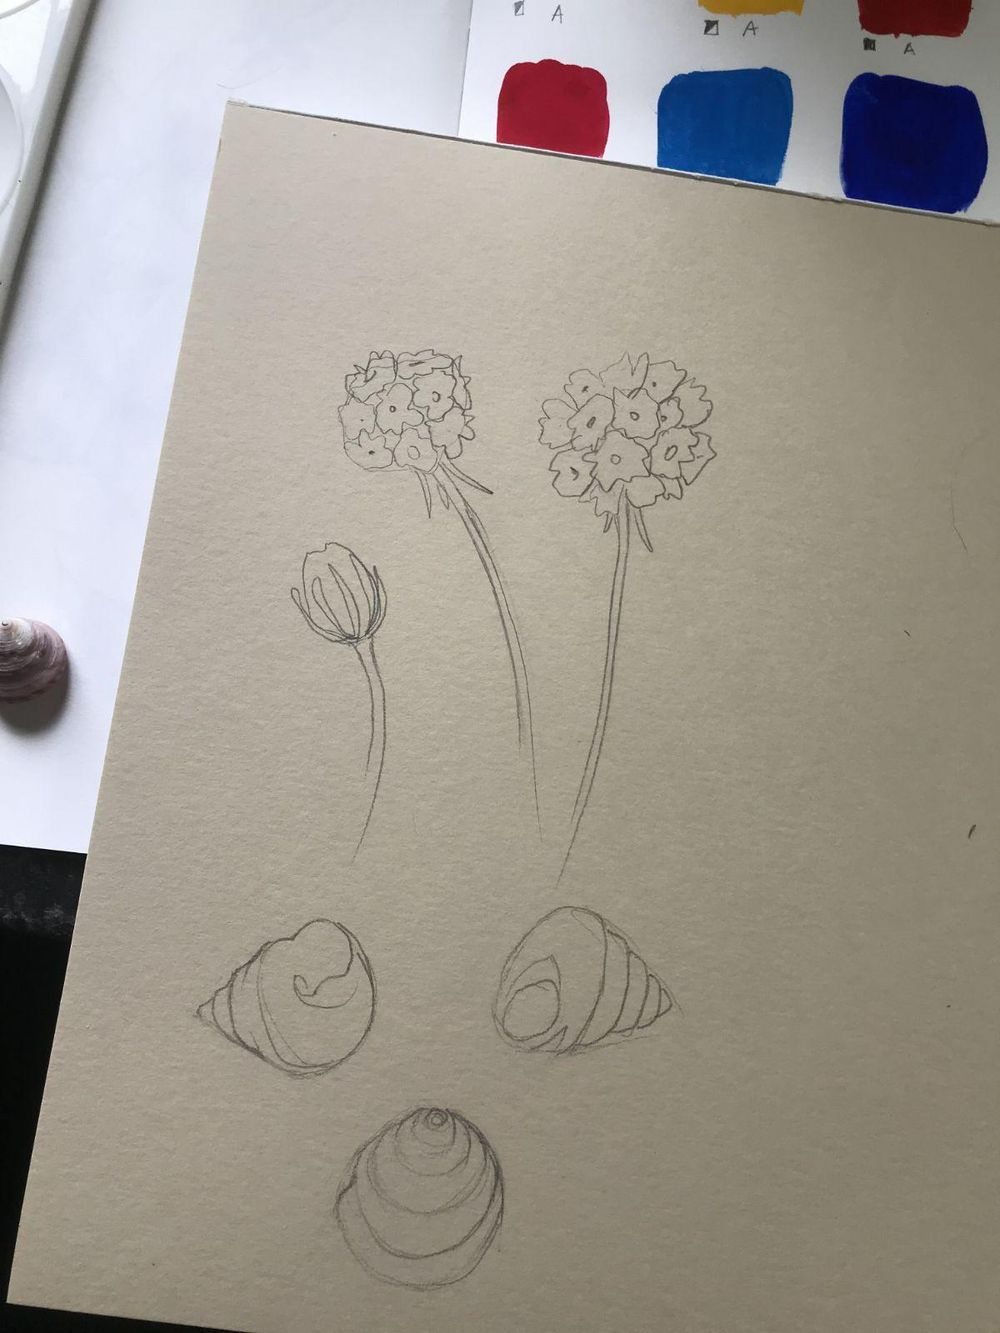 Seaside inspiration - image 1 - student project